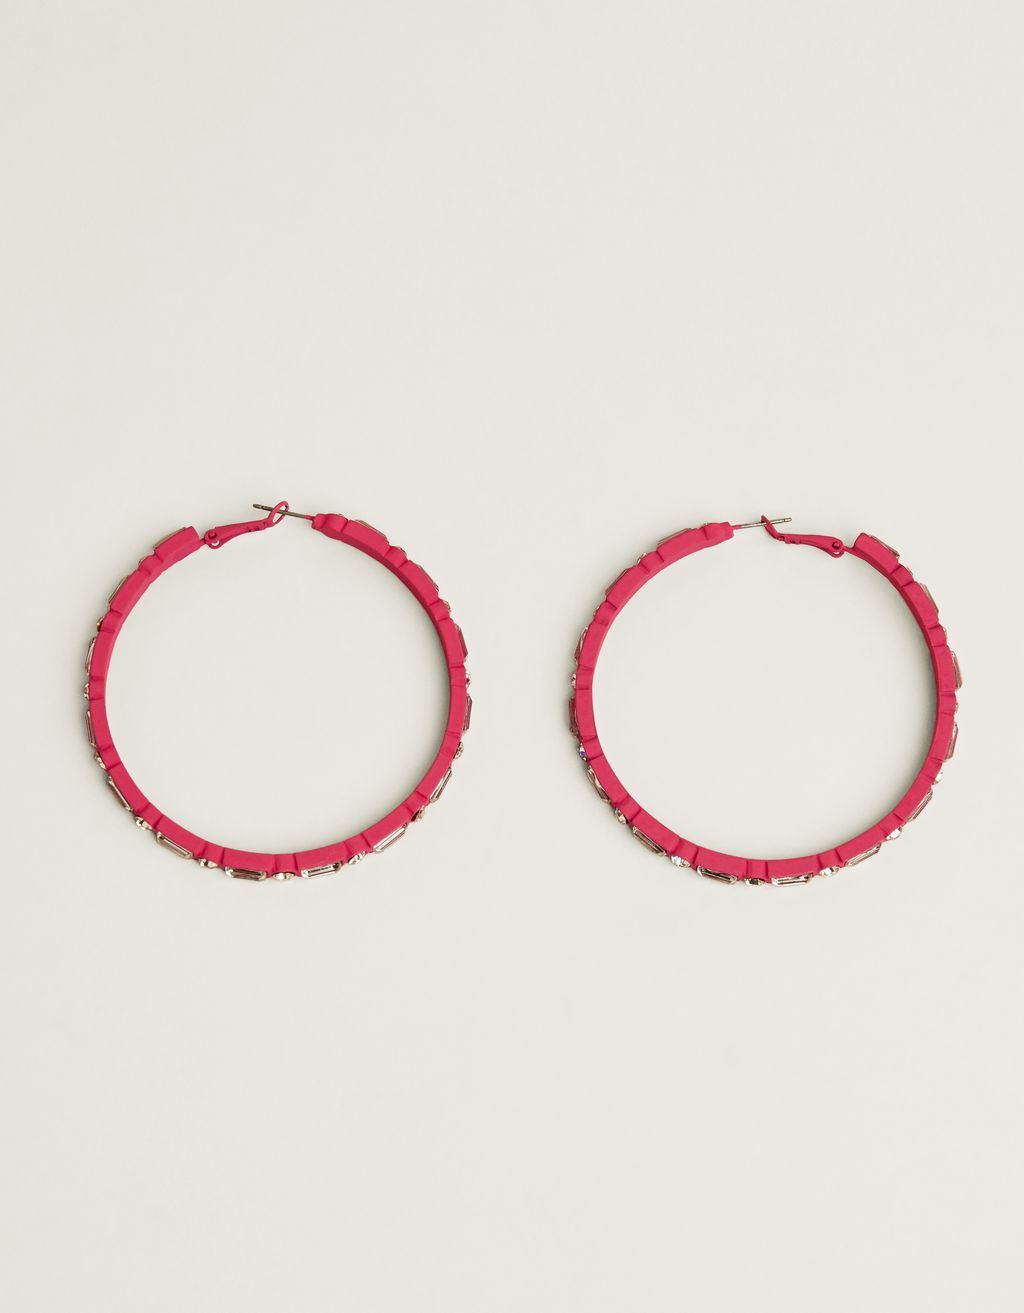 Neon hoop earrings with shiny detail